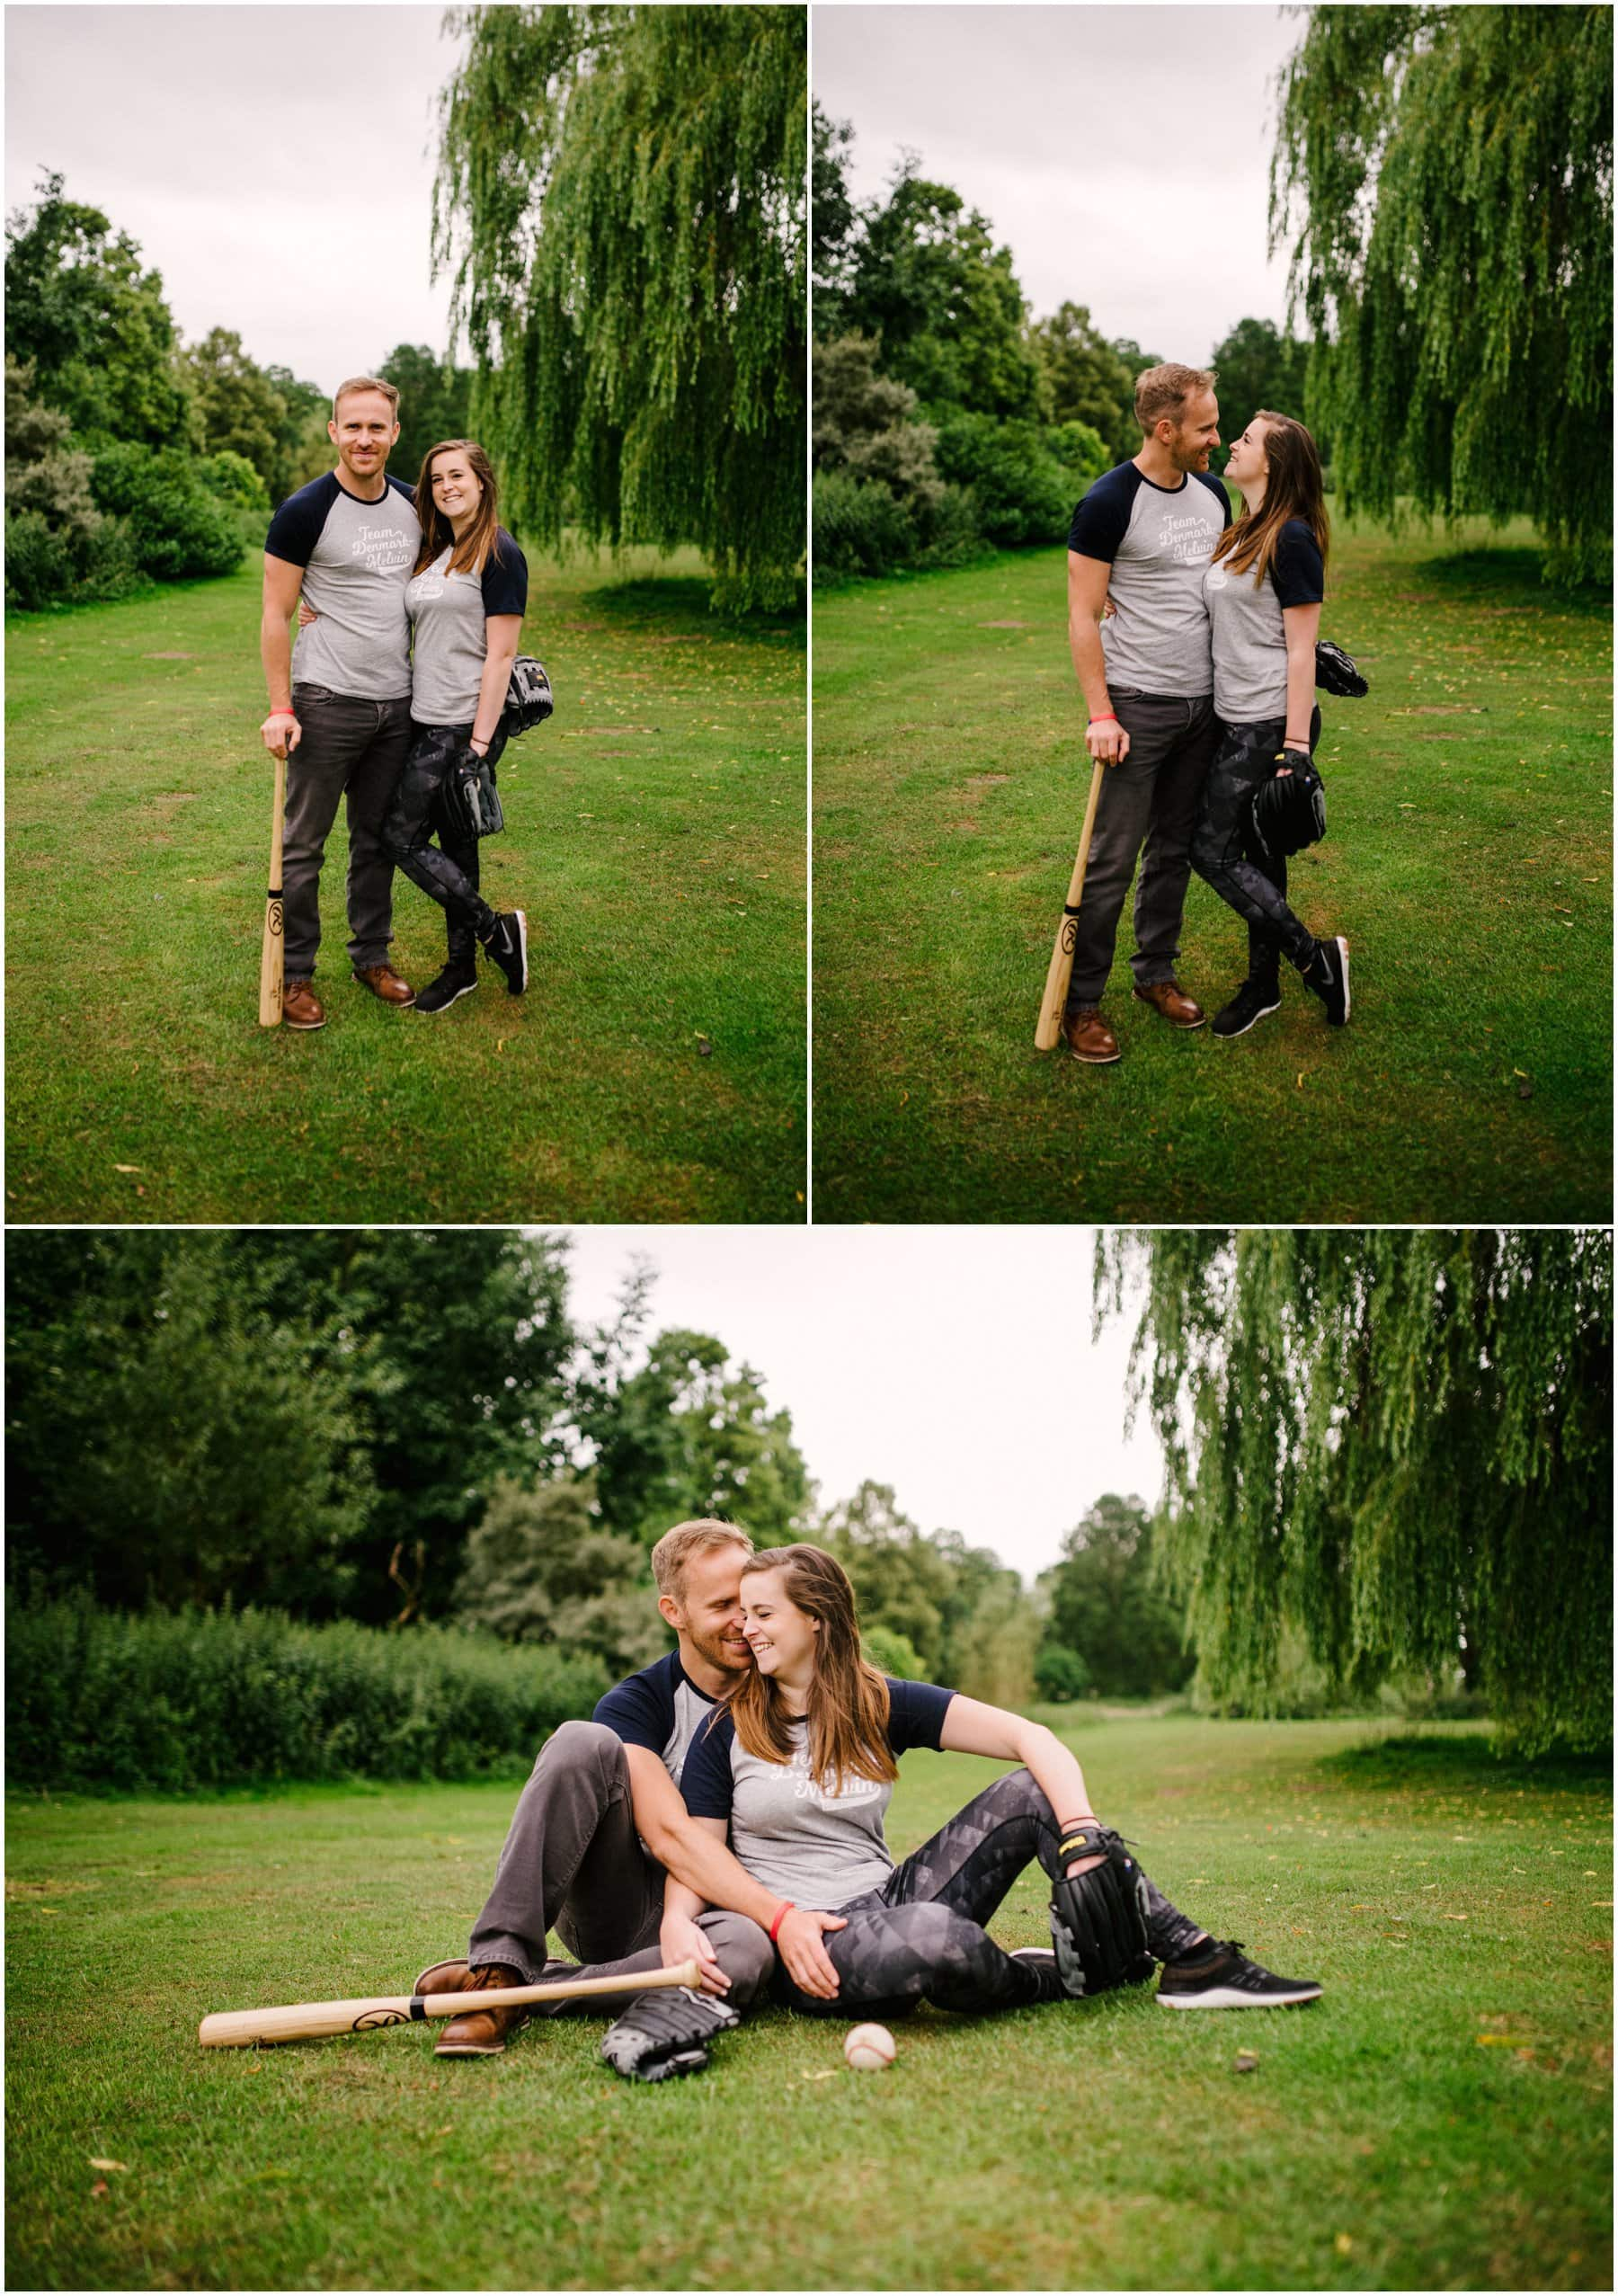 Meg and Dan's Engagement Session in Beacon Park, Lichfield, with baseball playing fun by Lisa Carpenter Photography, West Midlands and Birmingham Wedding Photographer, shooting cool, alternative and contemporary wedding photos.